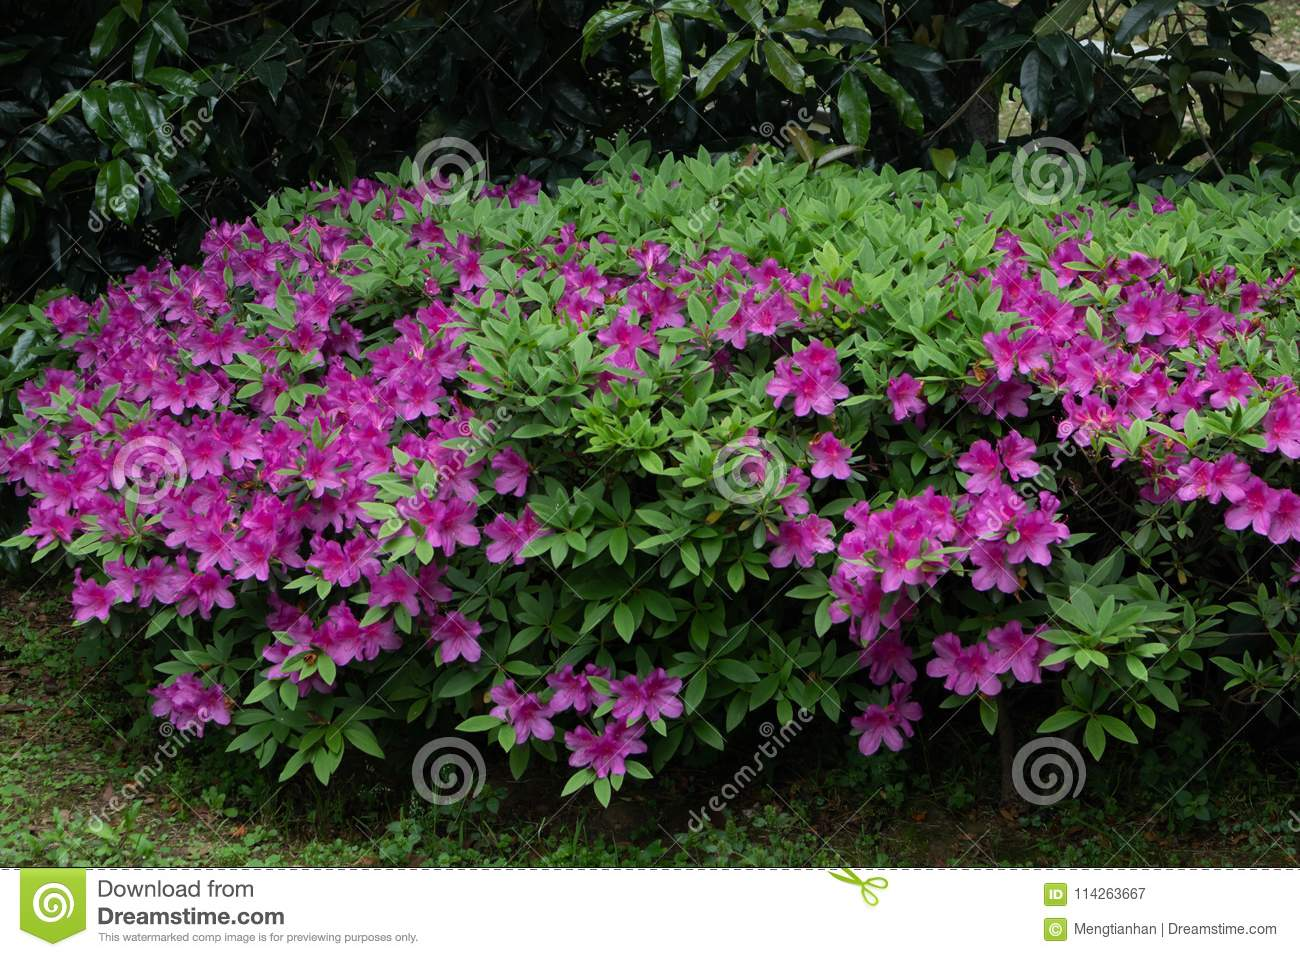 Rhododendron simsii Planch